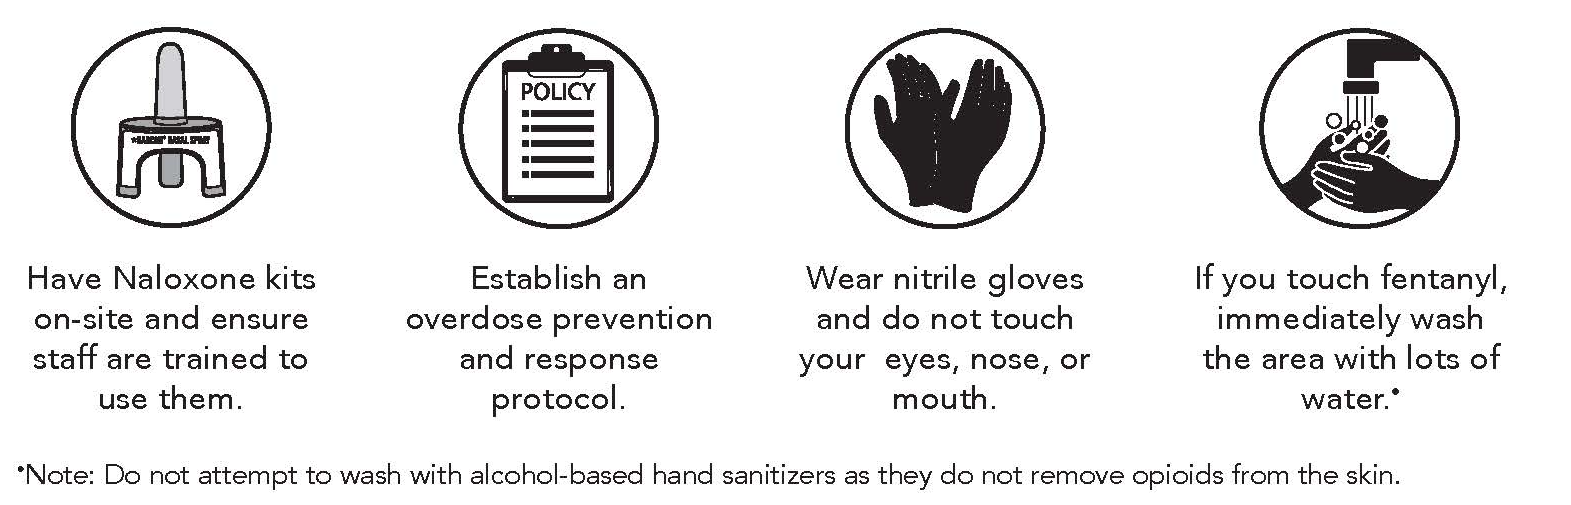 1. Have naloxone kitds on-site and ensure staff are trained to use them. 2. Establish an overdose prevention and response protocol. 3. Wear nitrile gloves and do not touch your eyes, nose, or mouth. 4. If you touch fentanyl immediatly wash the area with lots of water. Do not attempt to wash with alcohol based hand sanitizers as tehy do not remove opioids from the skin!